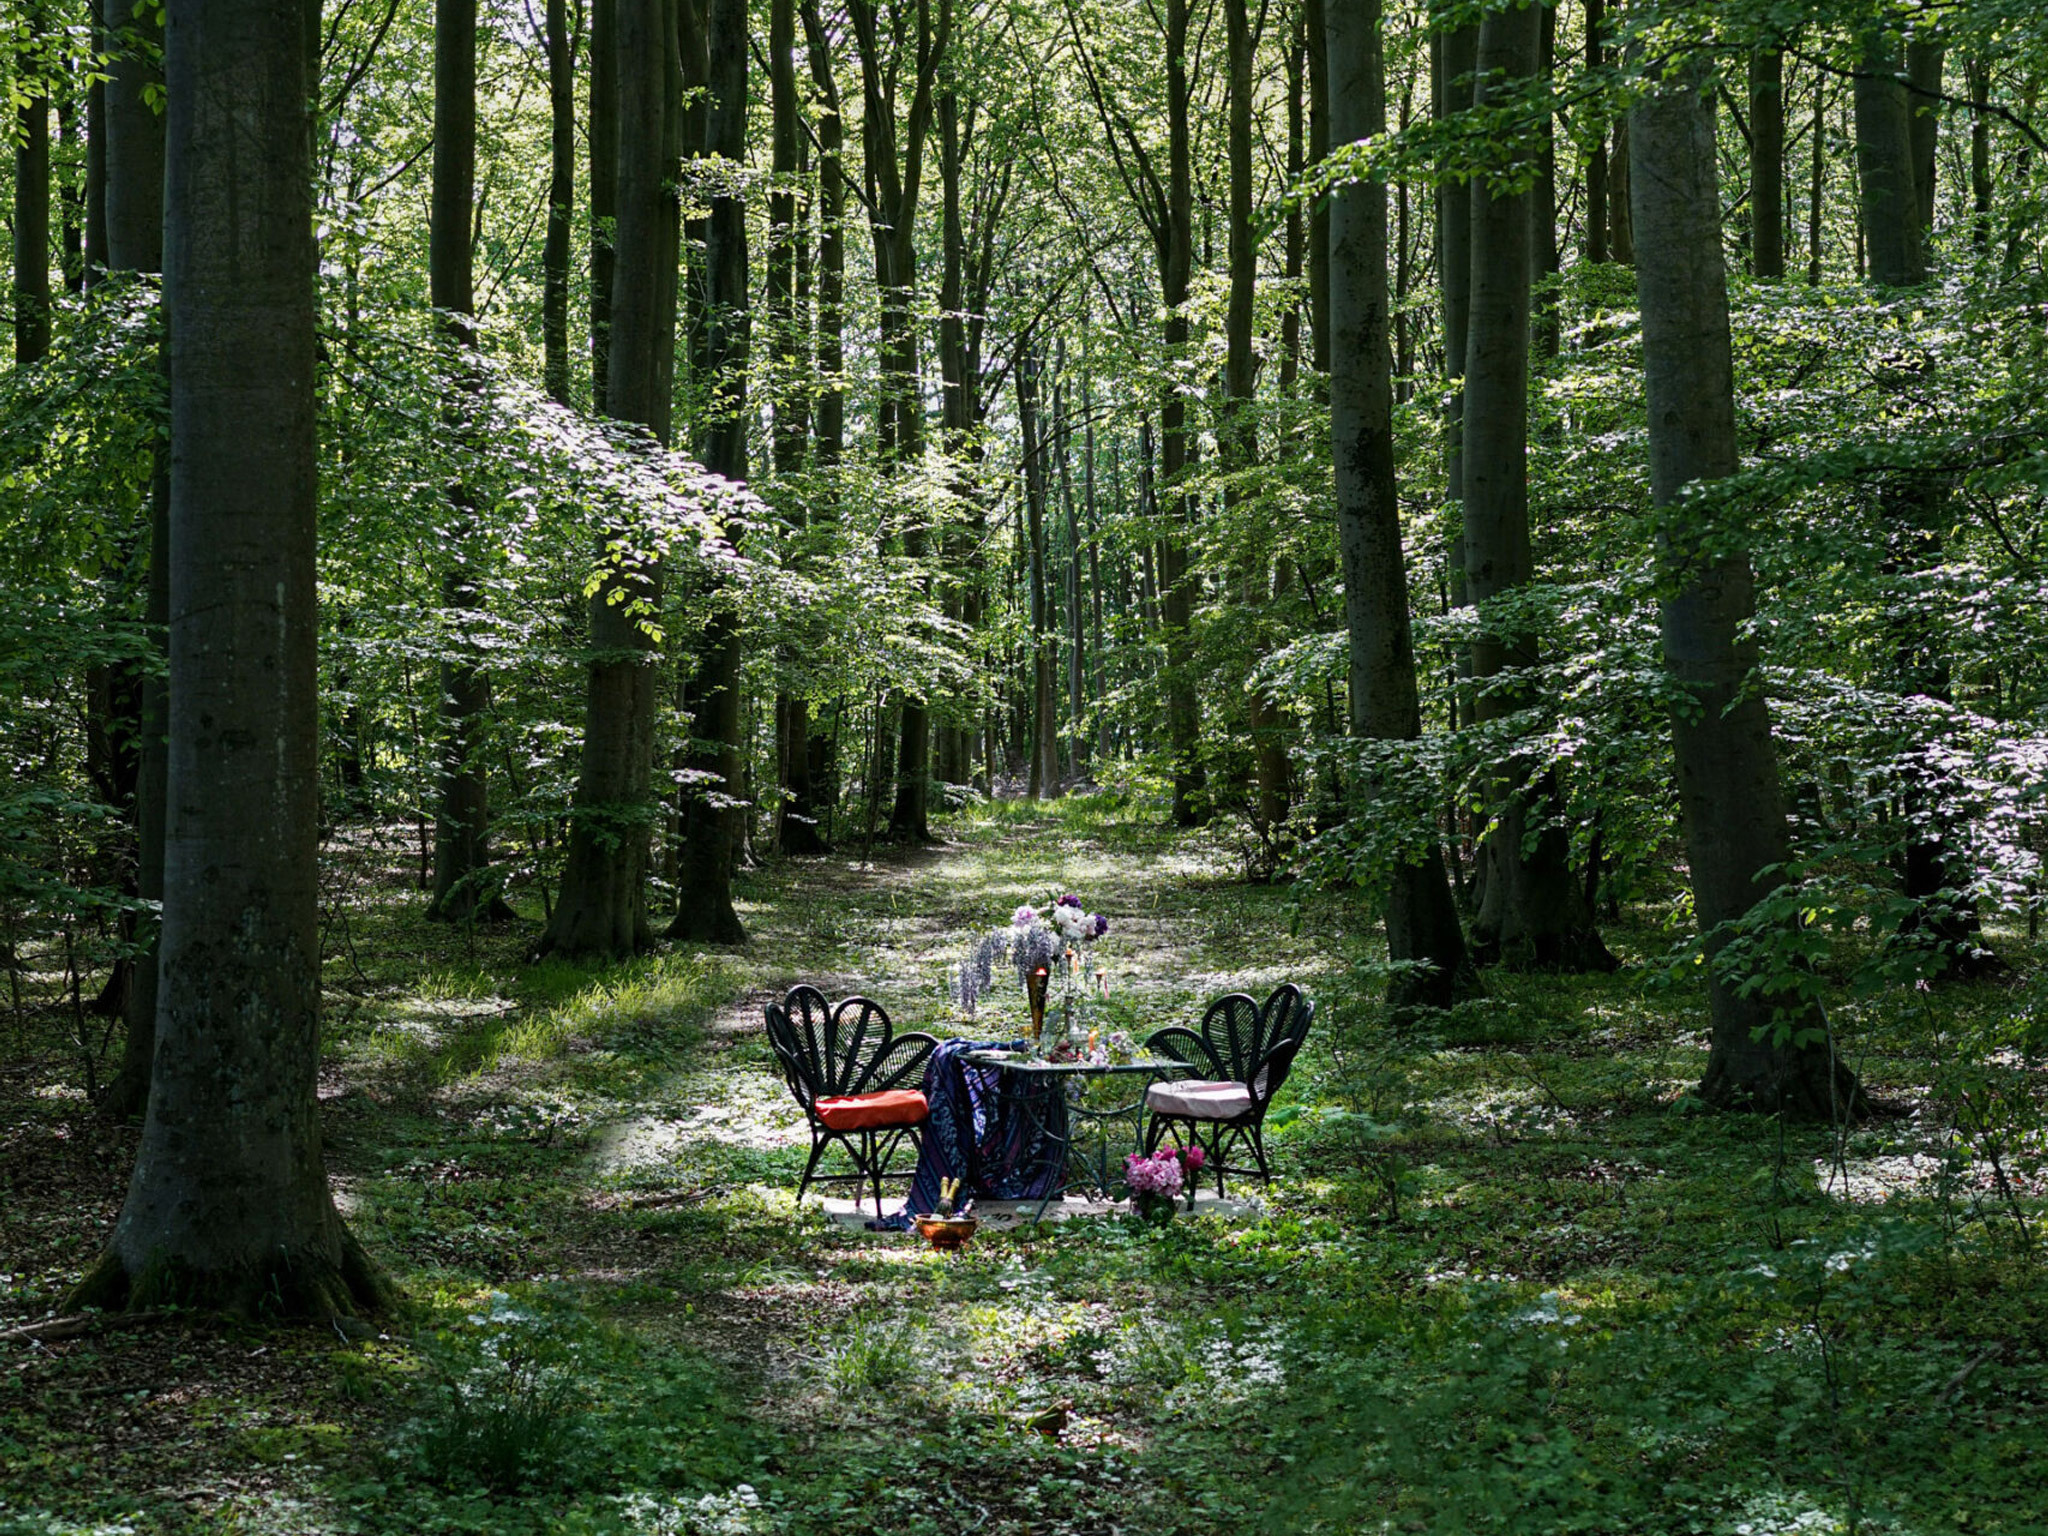 You can dine at isolated tables in a Swedish forest